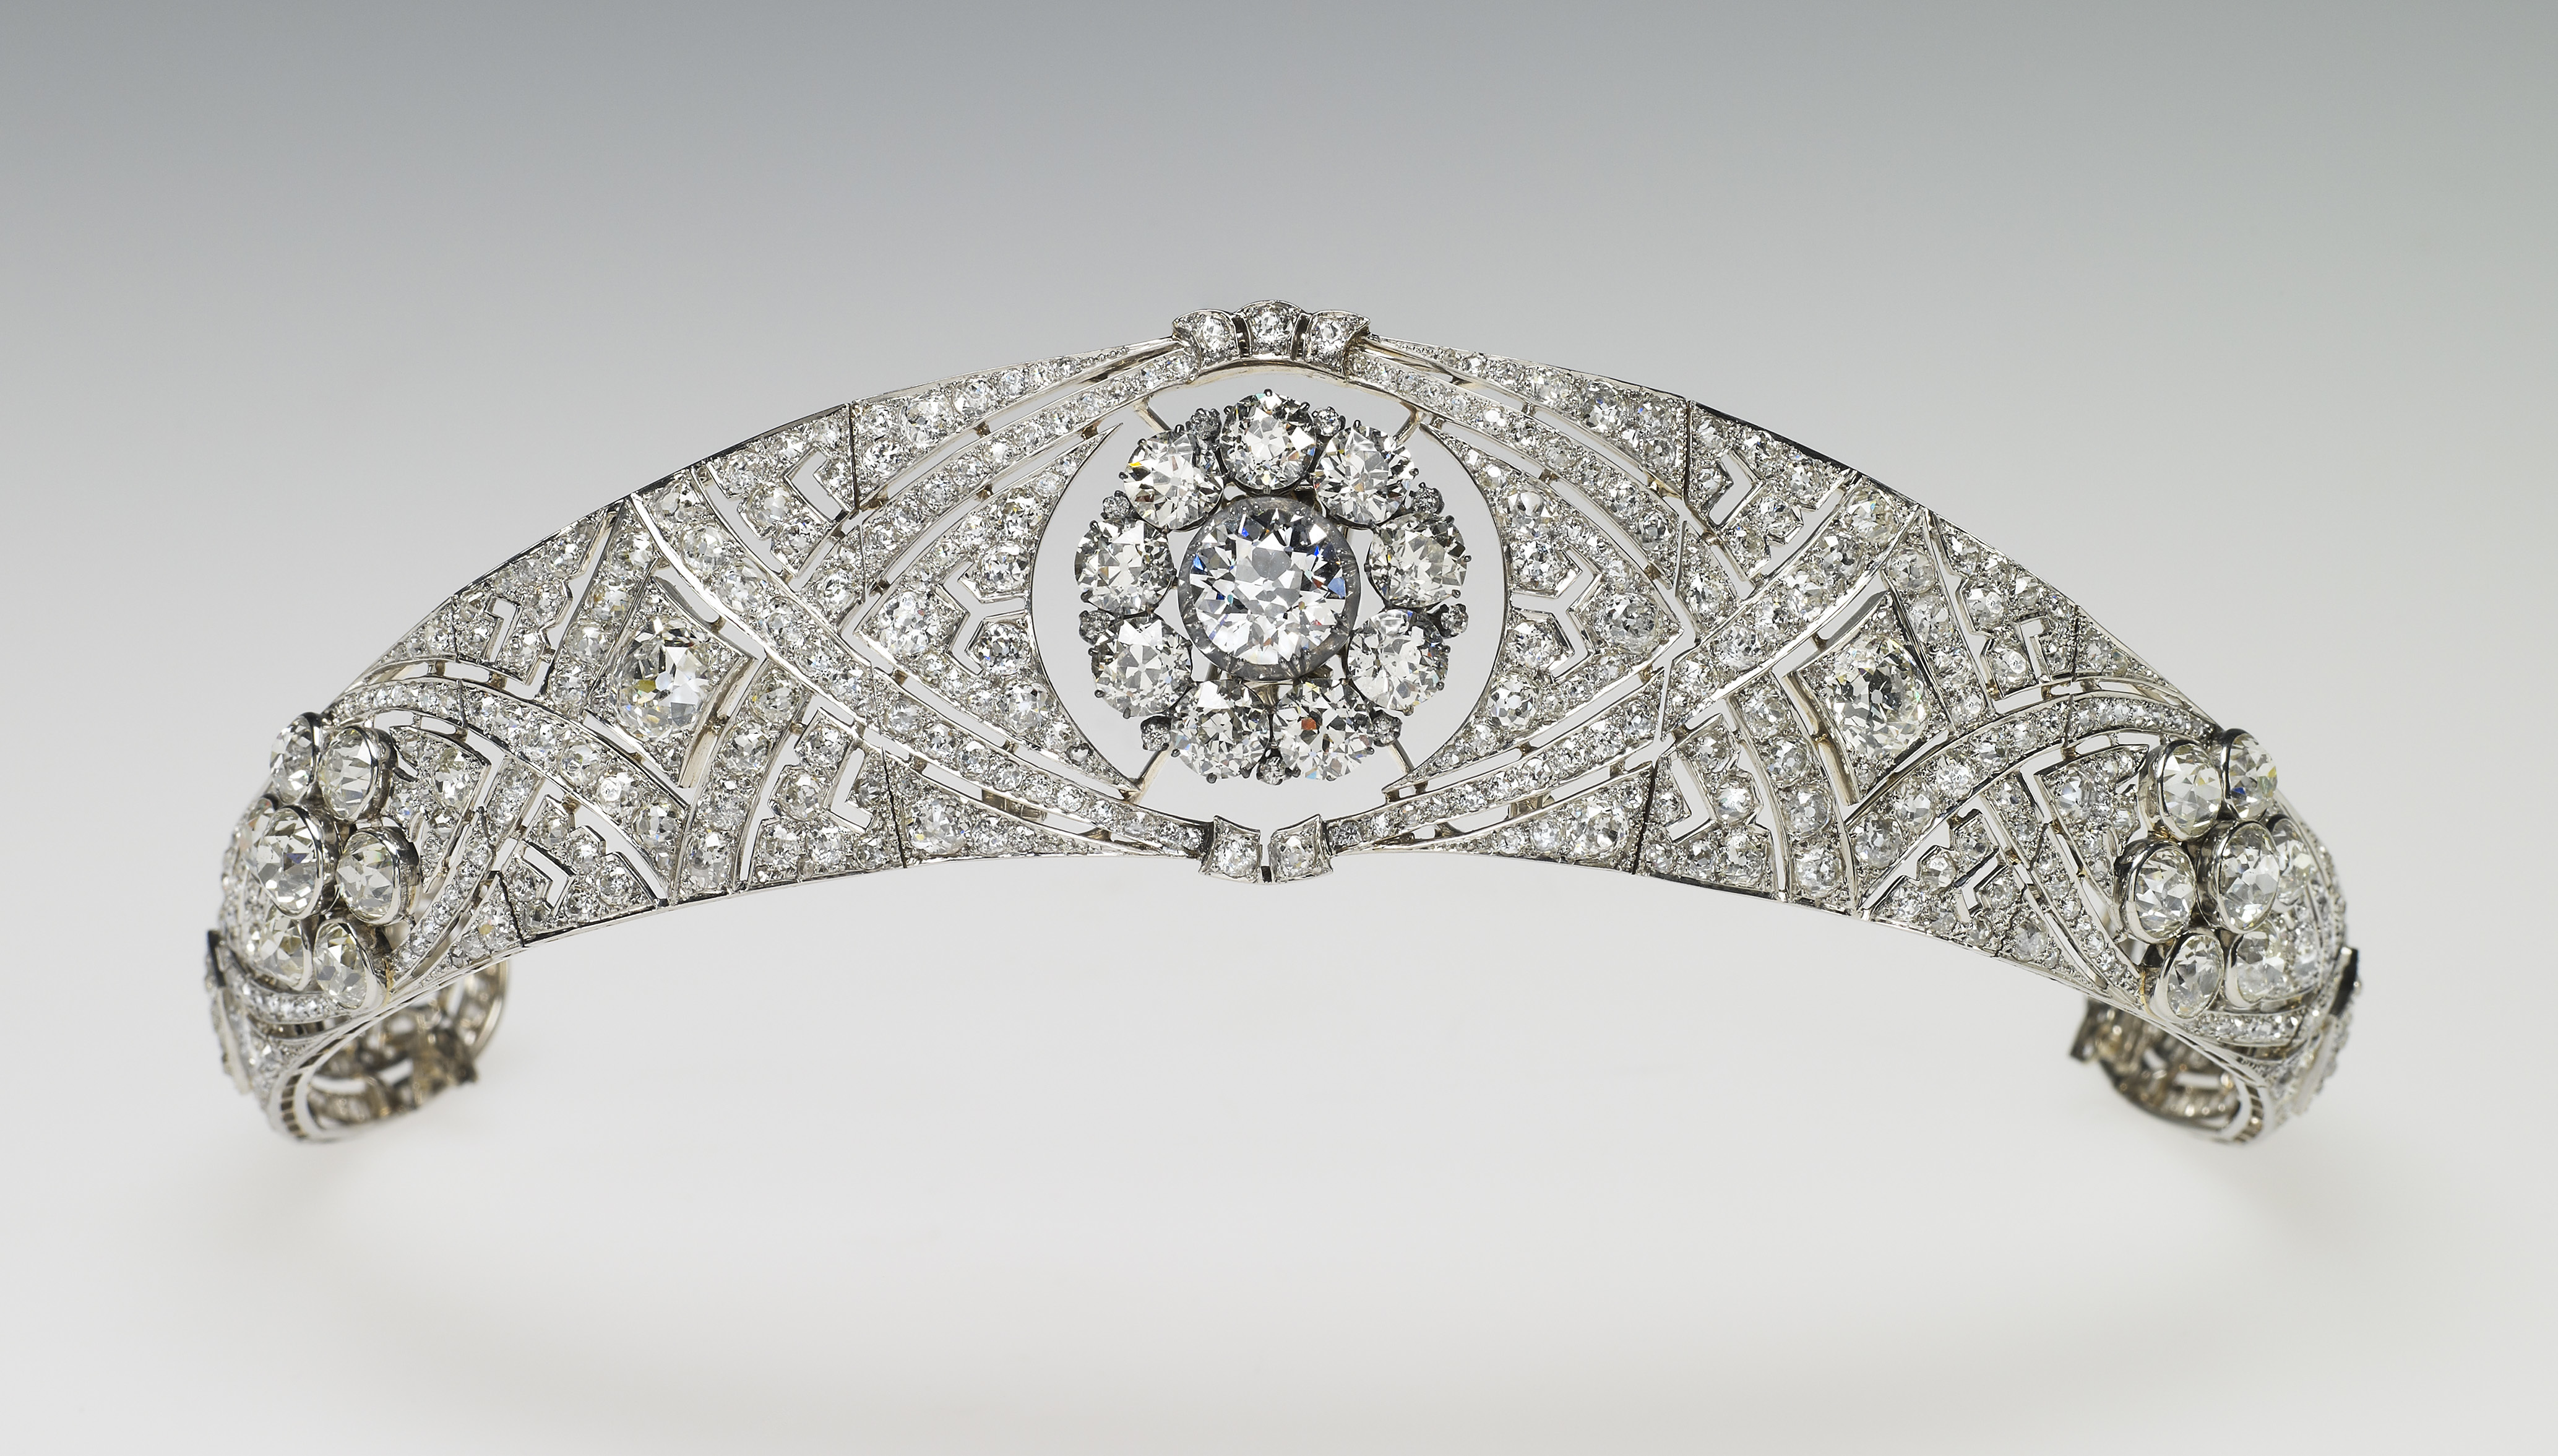 In this undated handout image released by the Royal Household, Queen Mary's Diamond Bandeau, which is being worn by Meghan Markle for her wedding to Prince Harry on May 19, 2018.